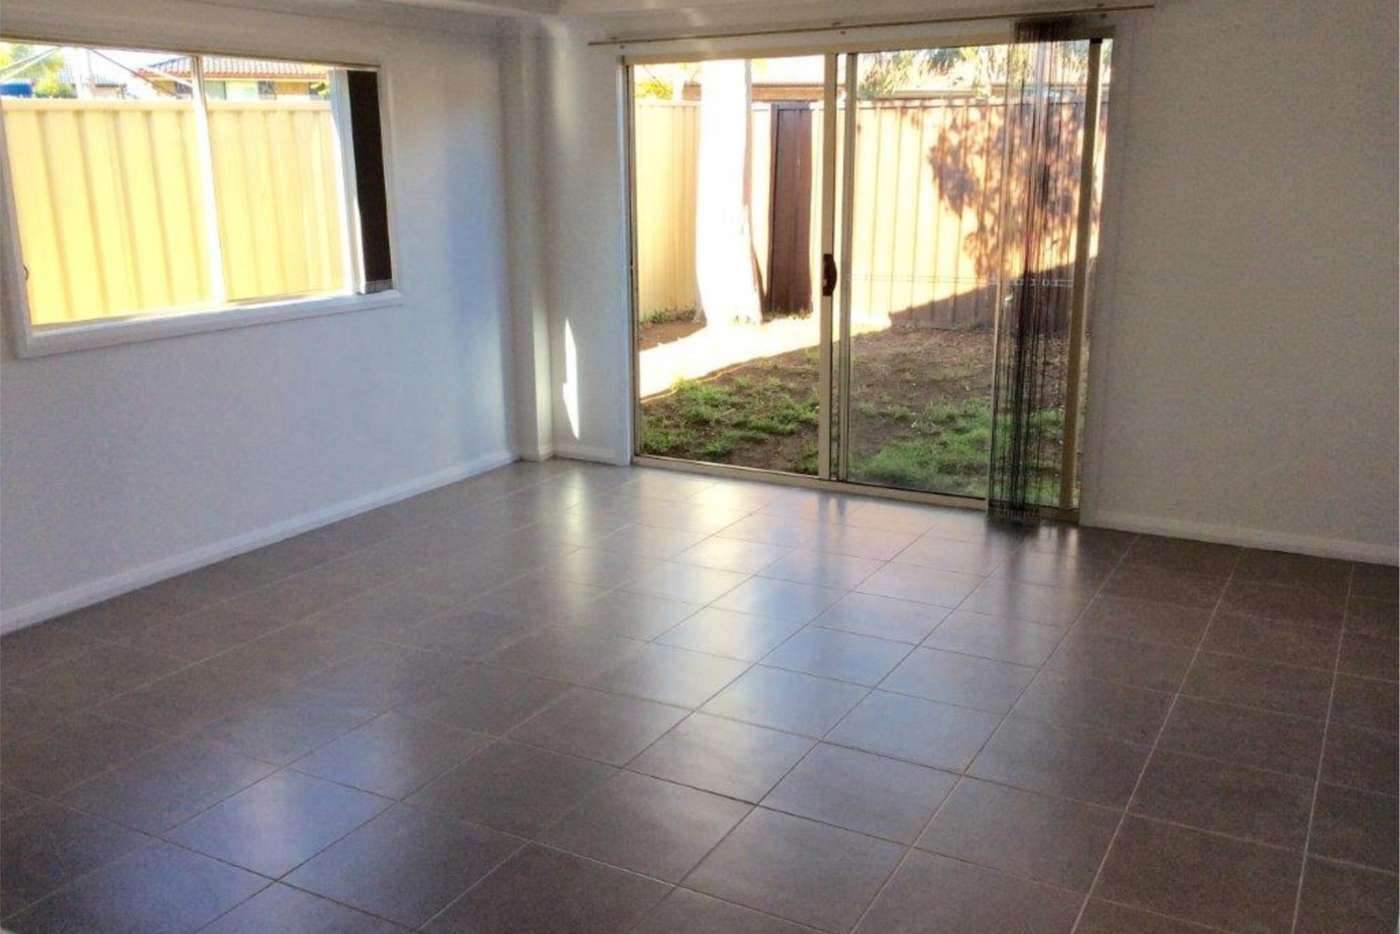 Main view of Homely flat listing, 44a Shadlow Crescent, St Clair NSW 2759